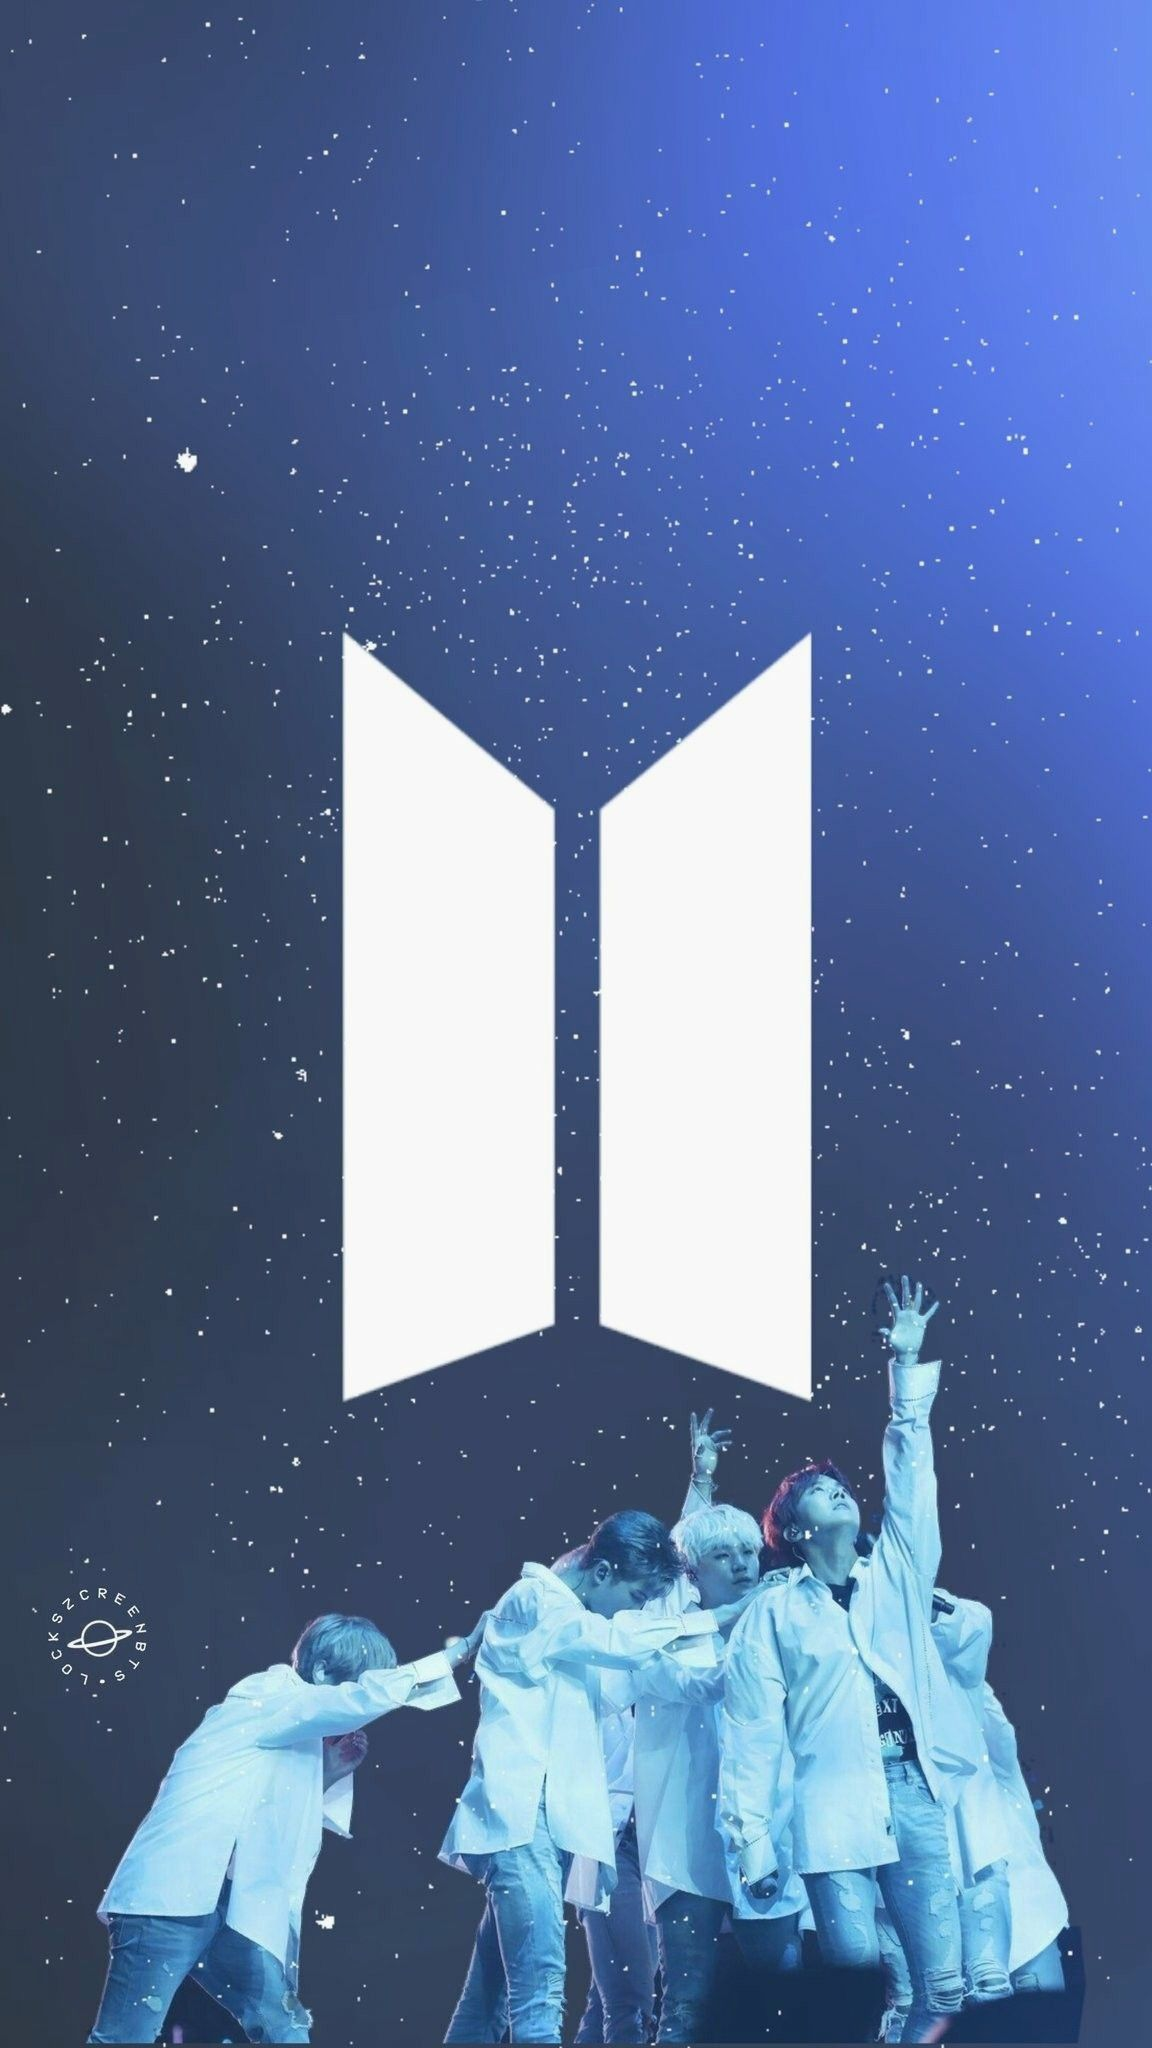 Bts Army Wallpapers Wallpaper Cave - Poster , HD Wallpaper & Backgrounds